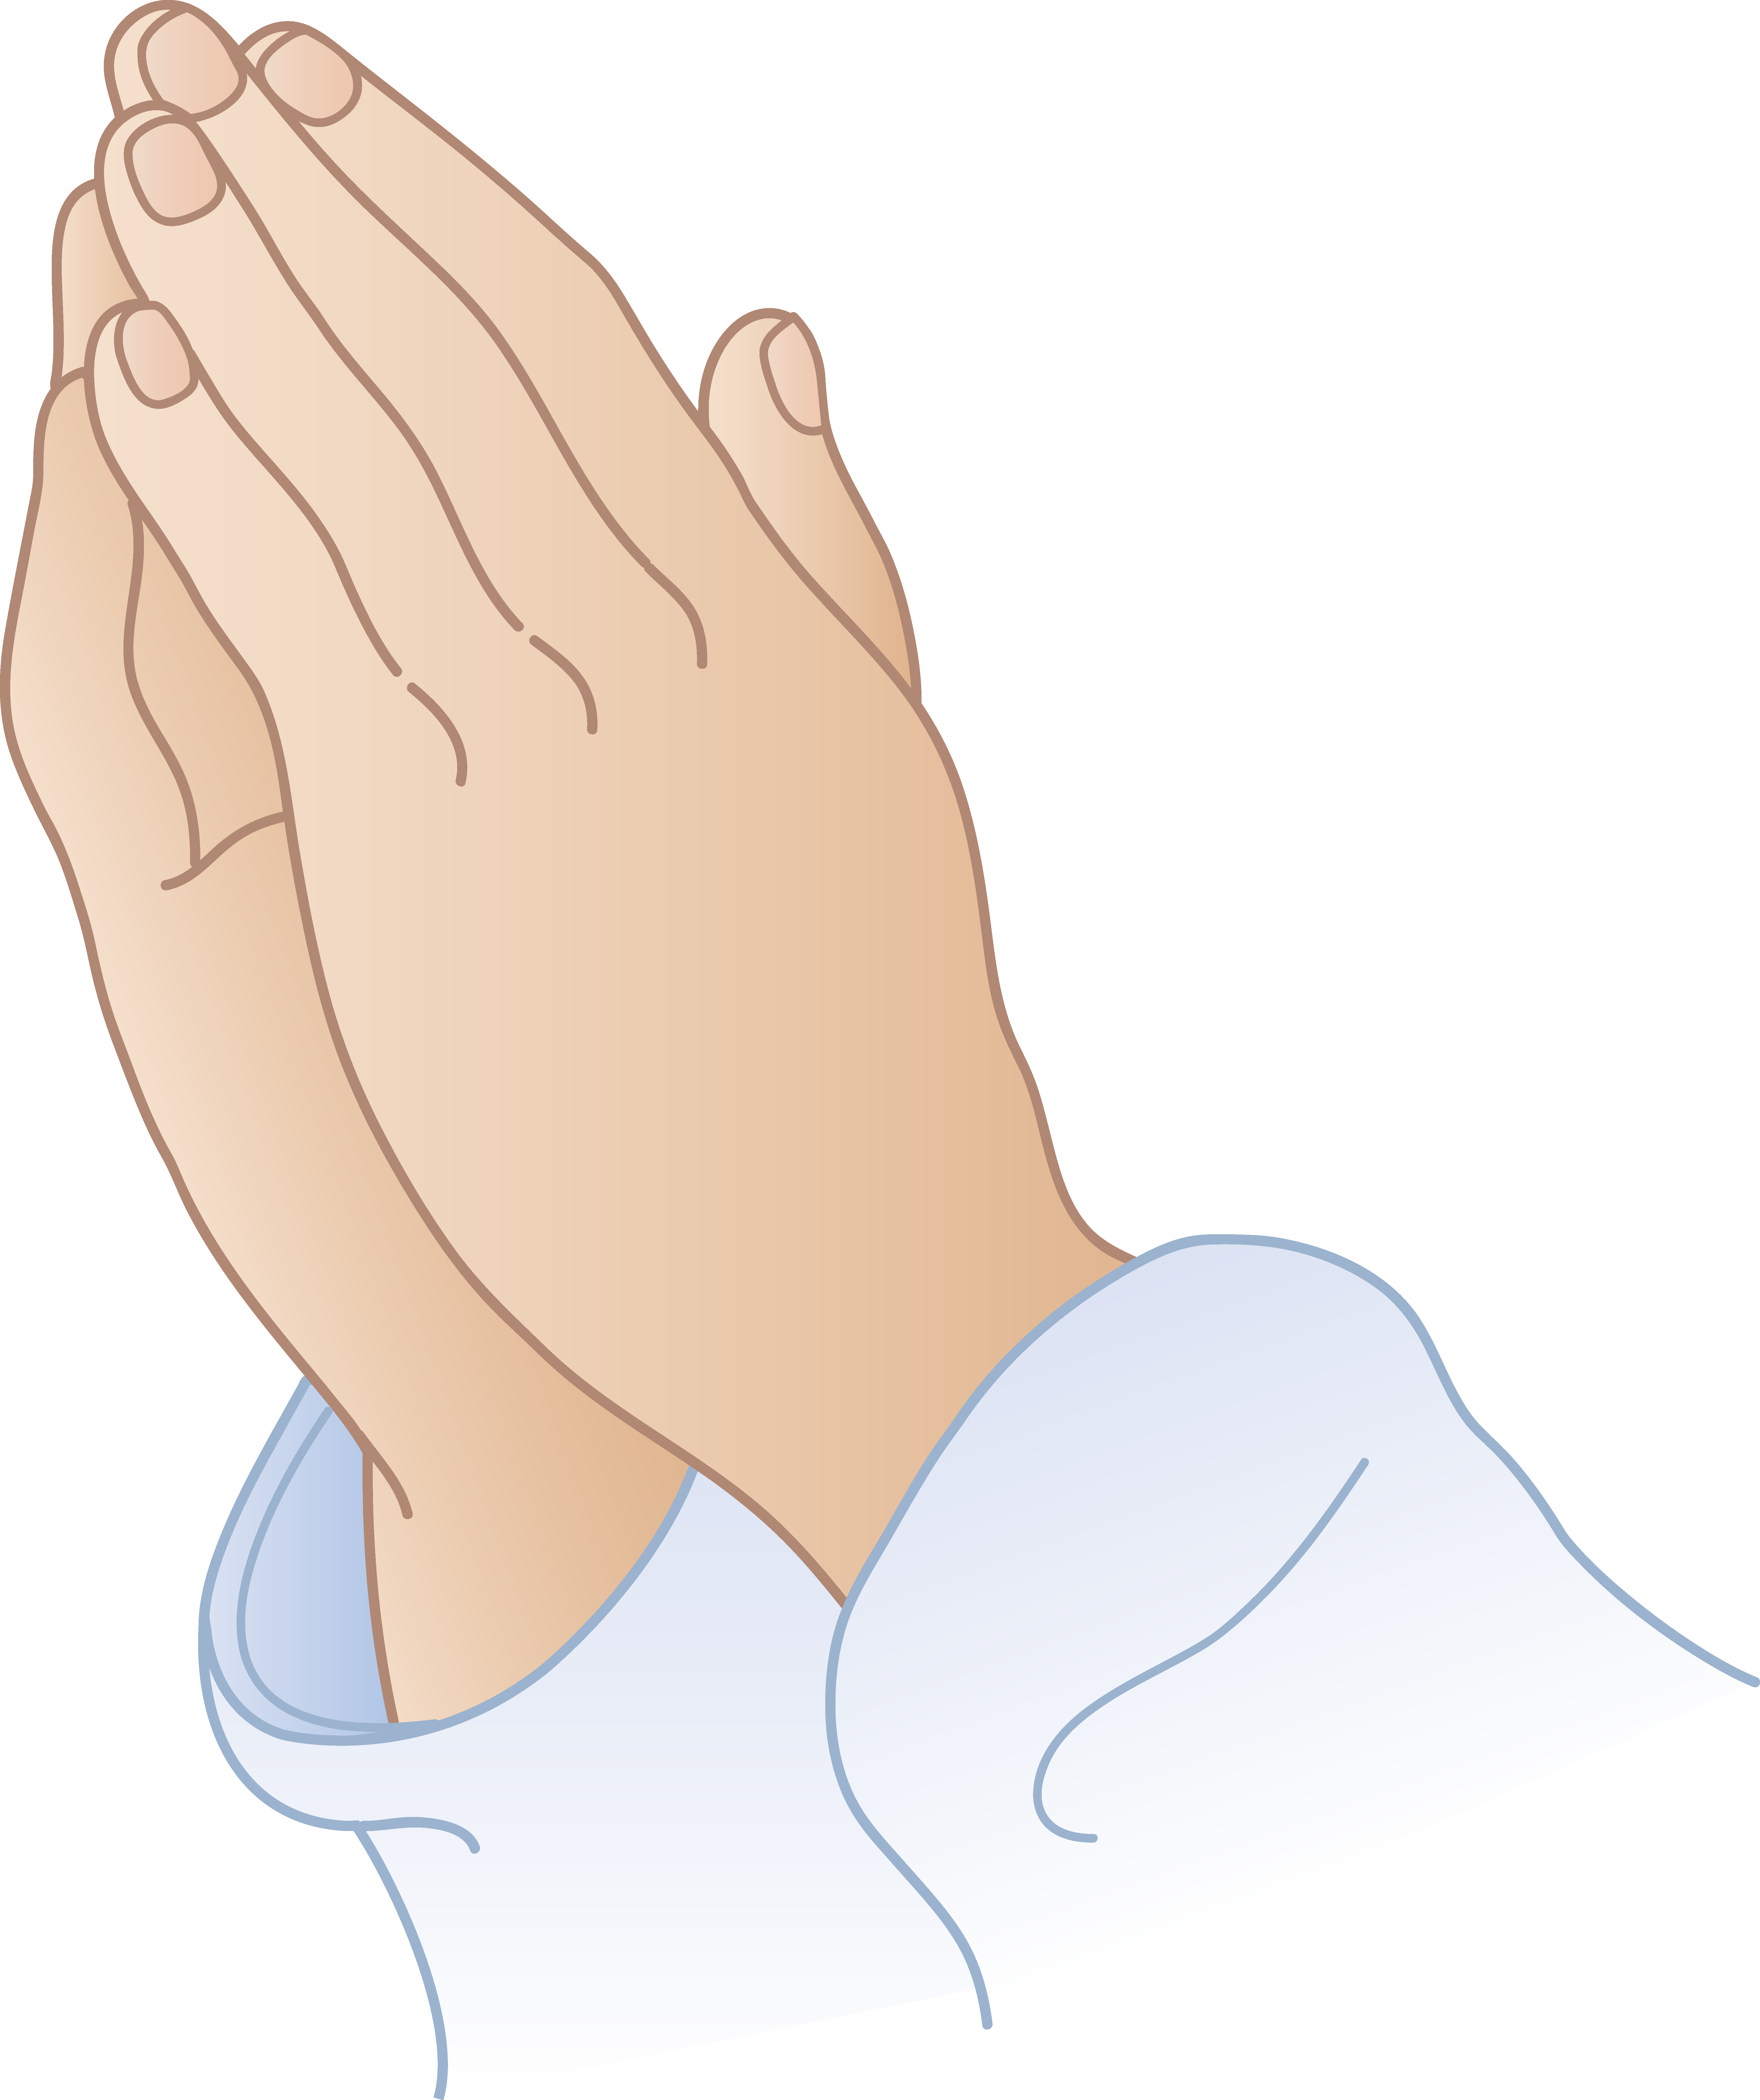 Hands carrying a house clipart jpg free Praying Hands | Praying Hands 1 - Free Clip Art | Christian Items ... jpg free